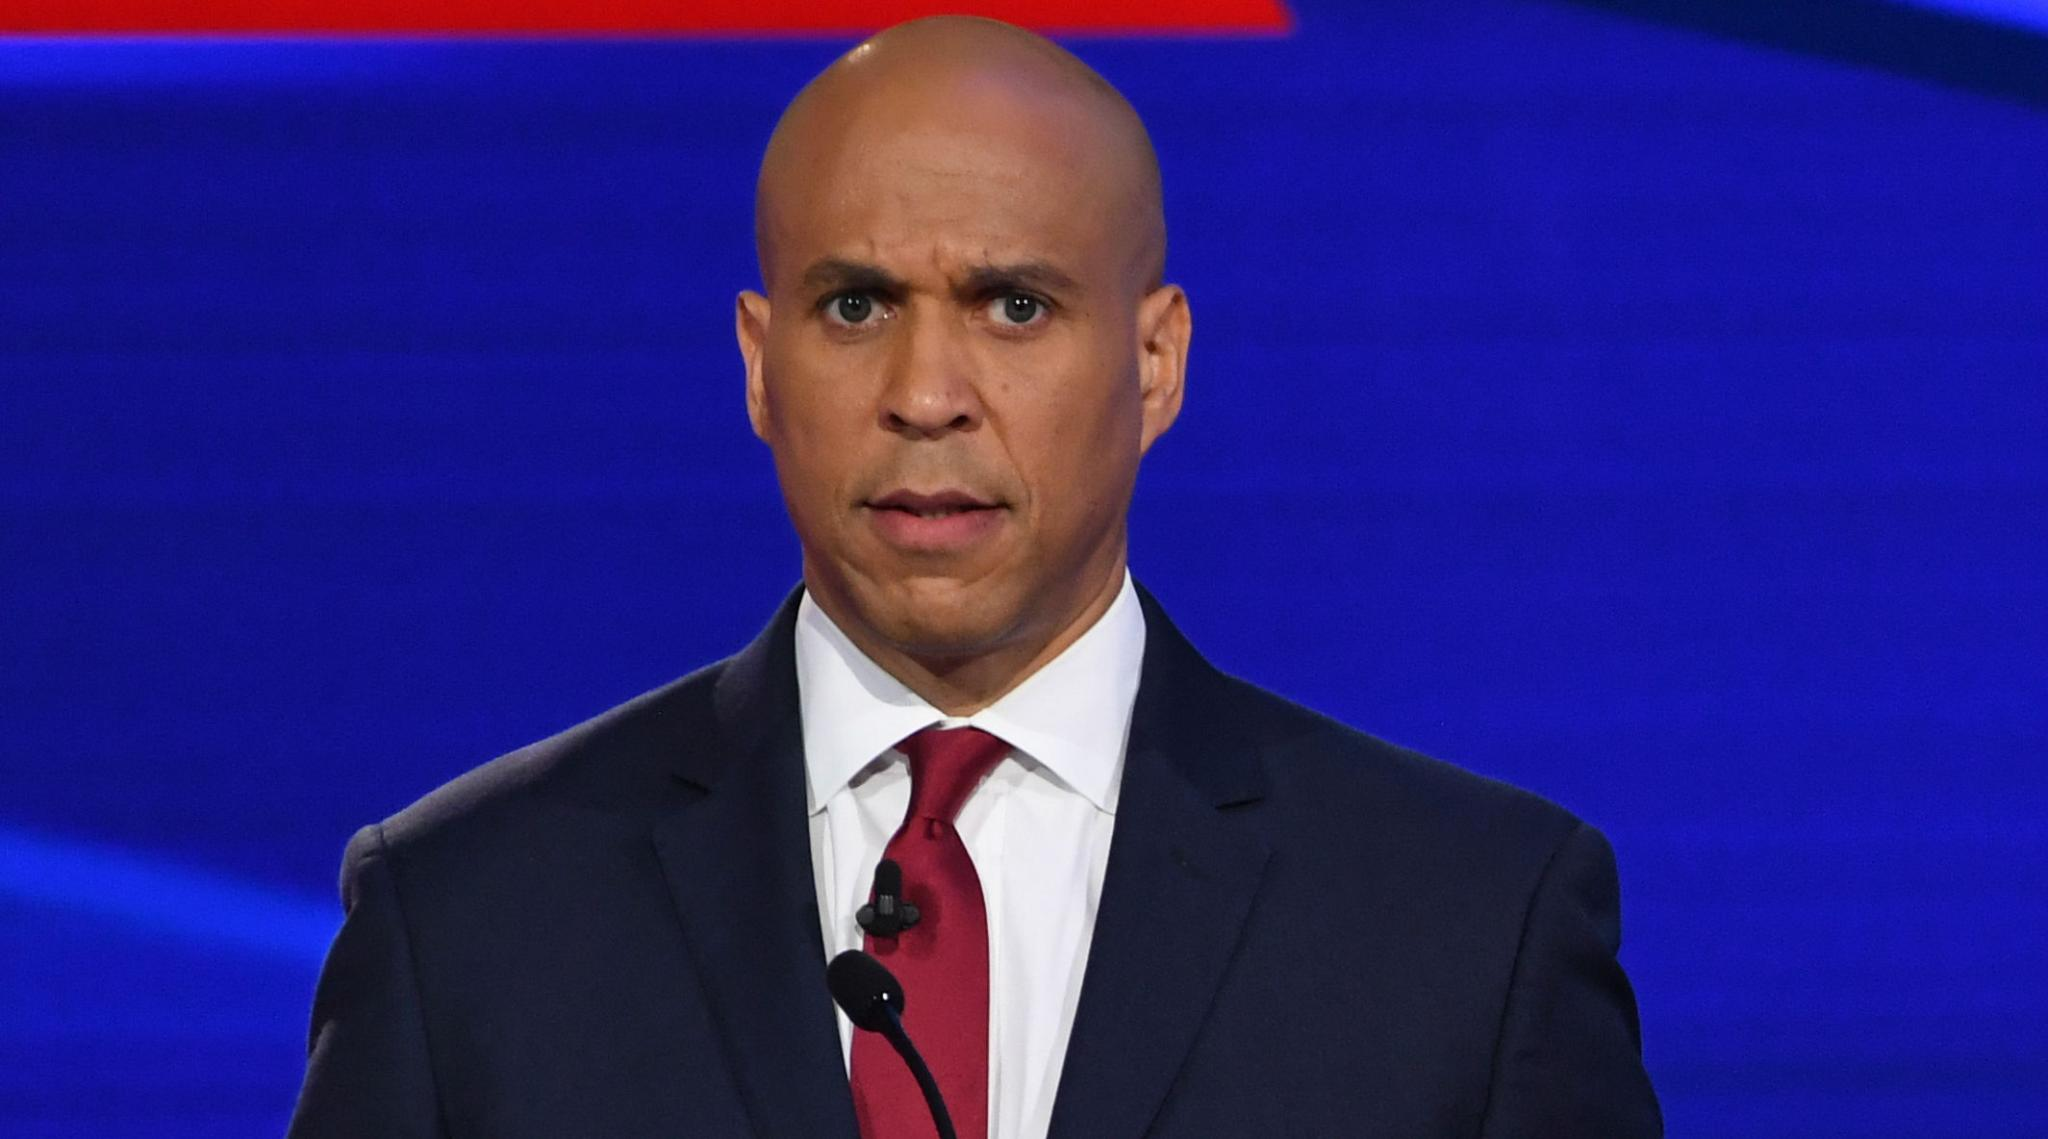 US Presidential Elections 2020: Senator Cory Booker, Last African-American Candidate in Race, Drops Out Due to Lack of Funds